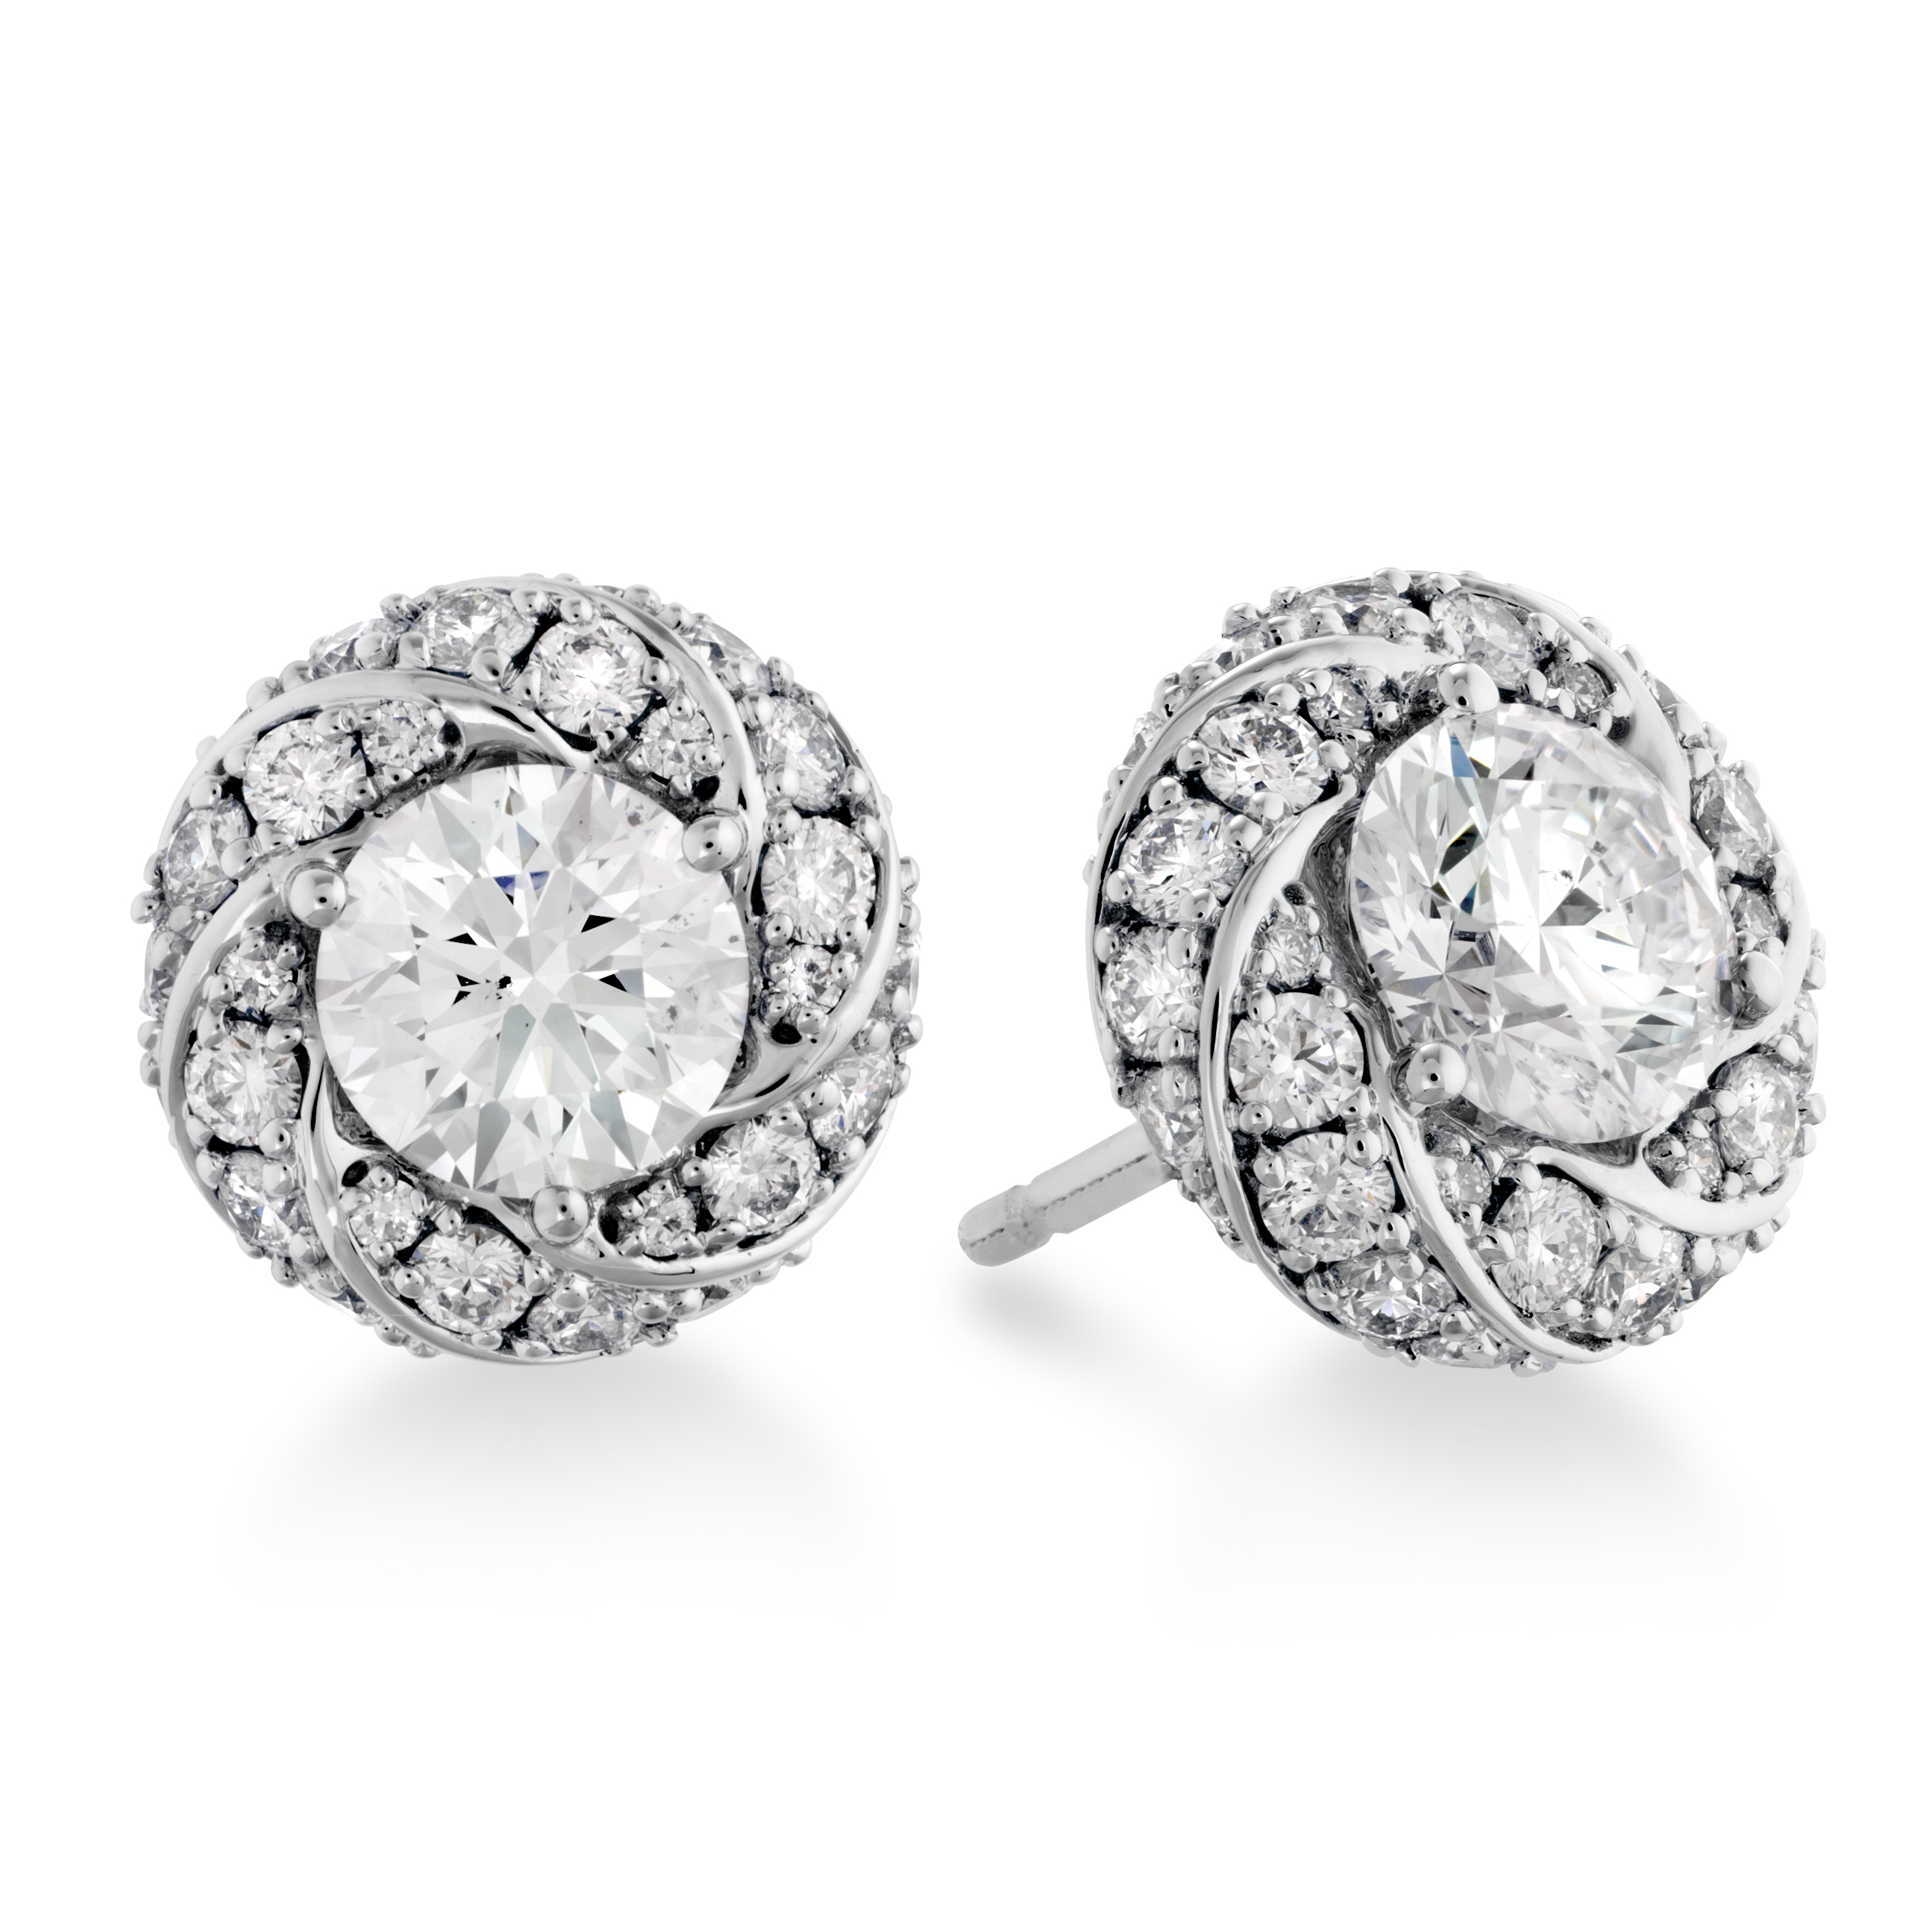 blog to diamond know about earrings checklist need stud real studs facts